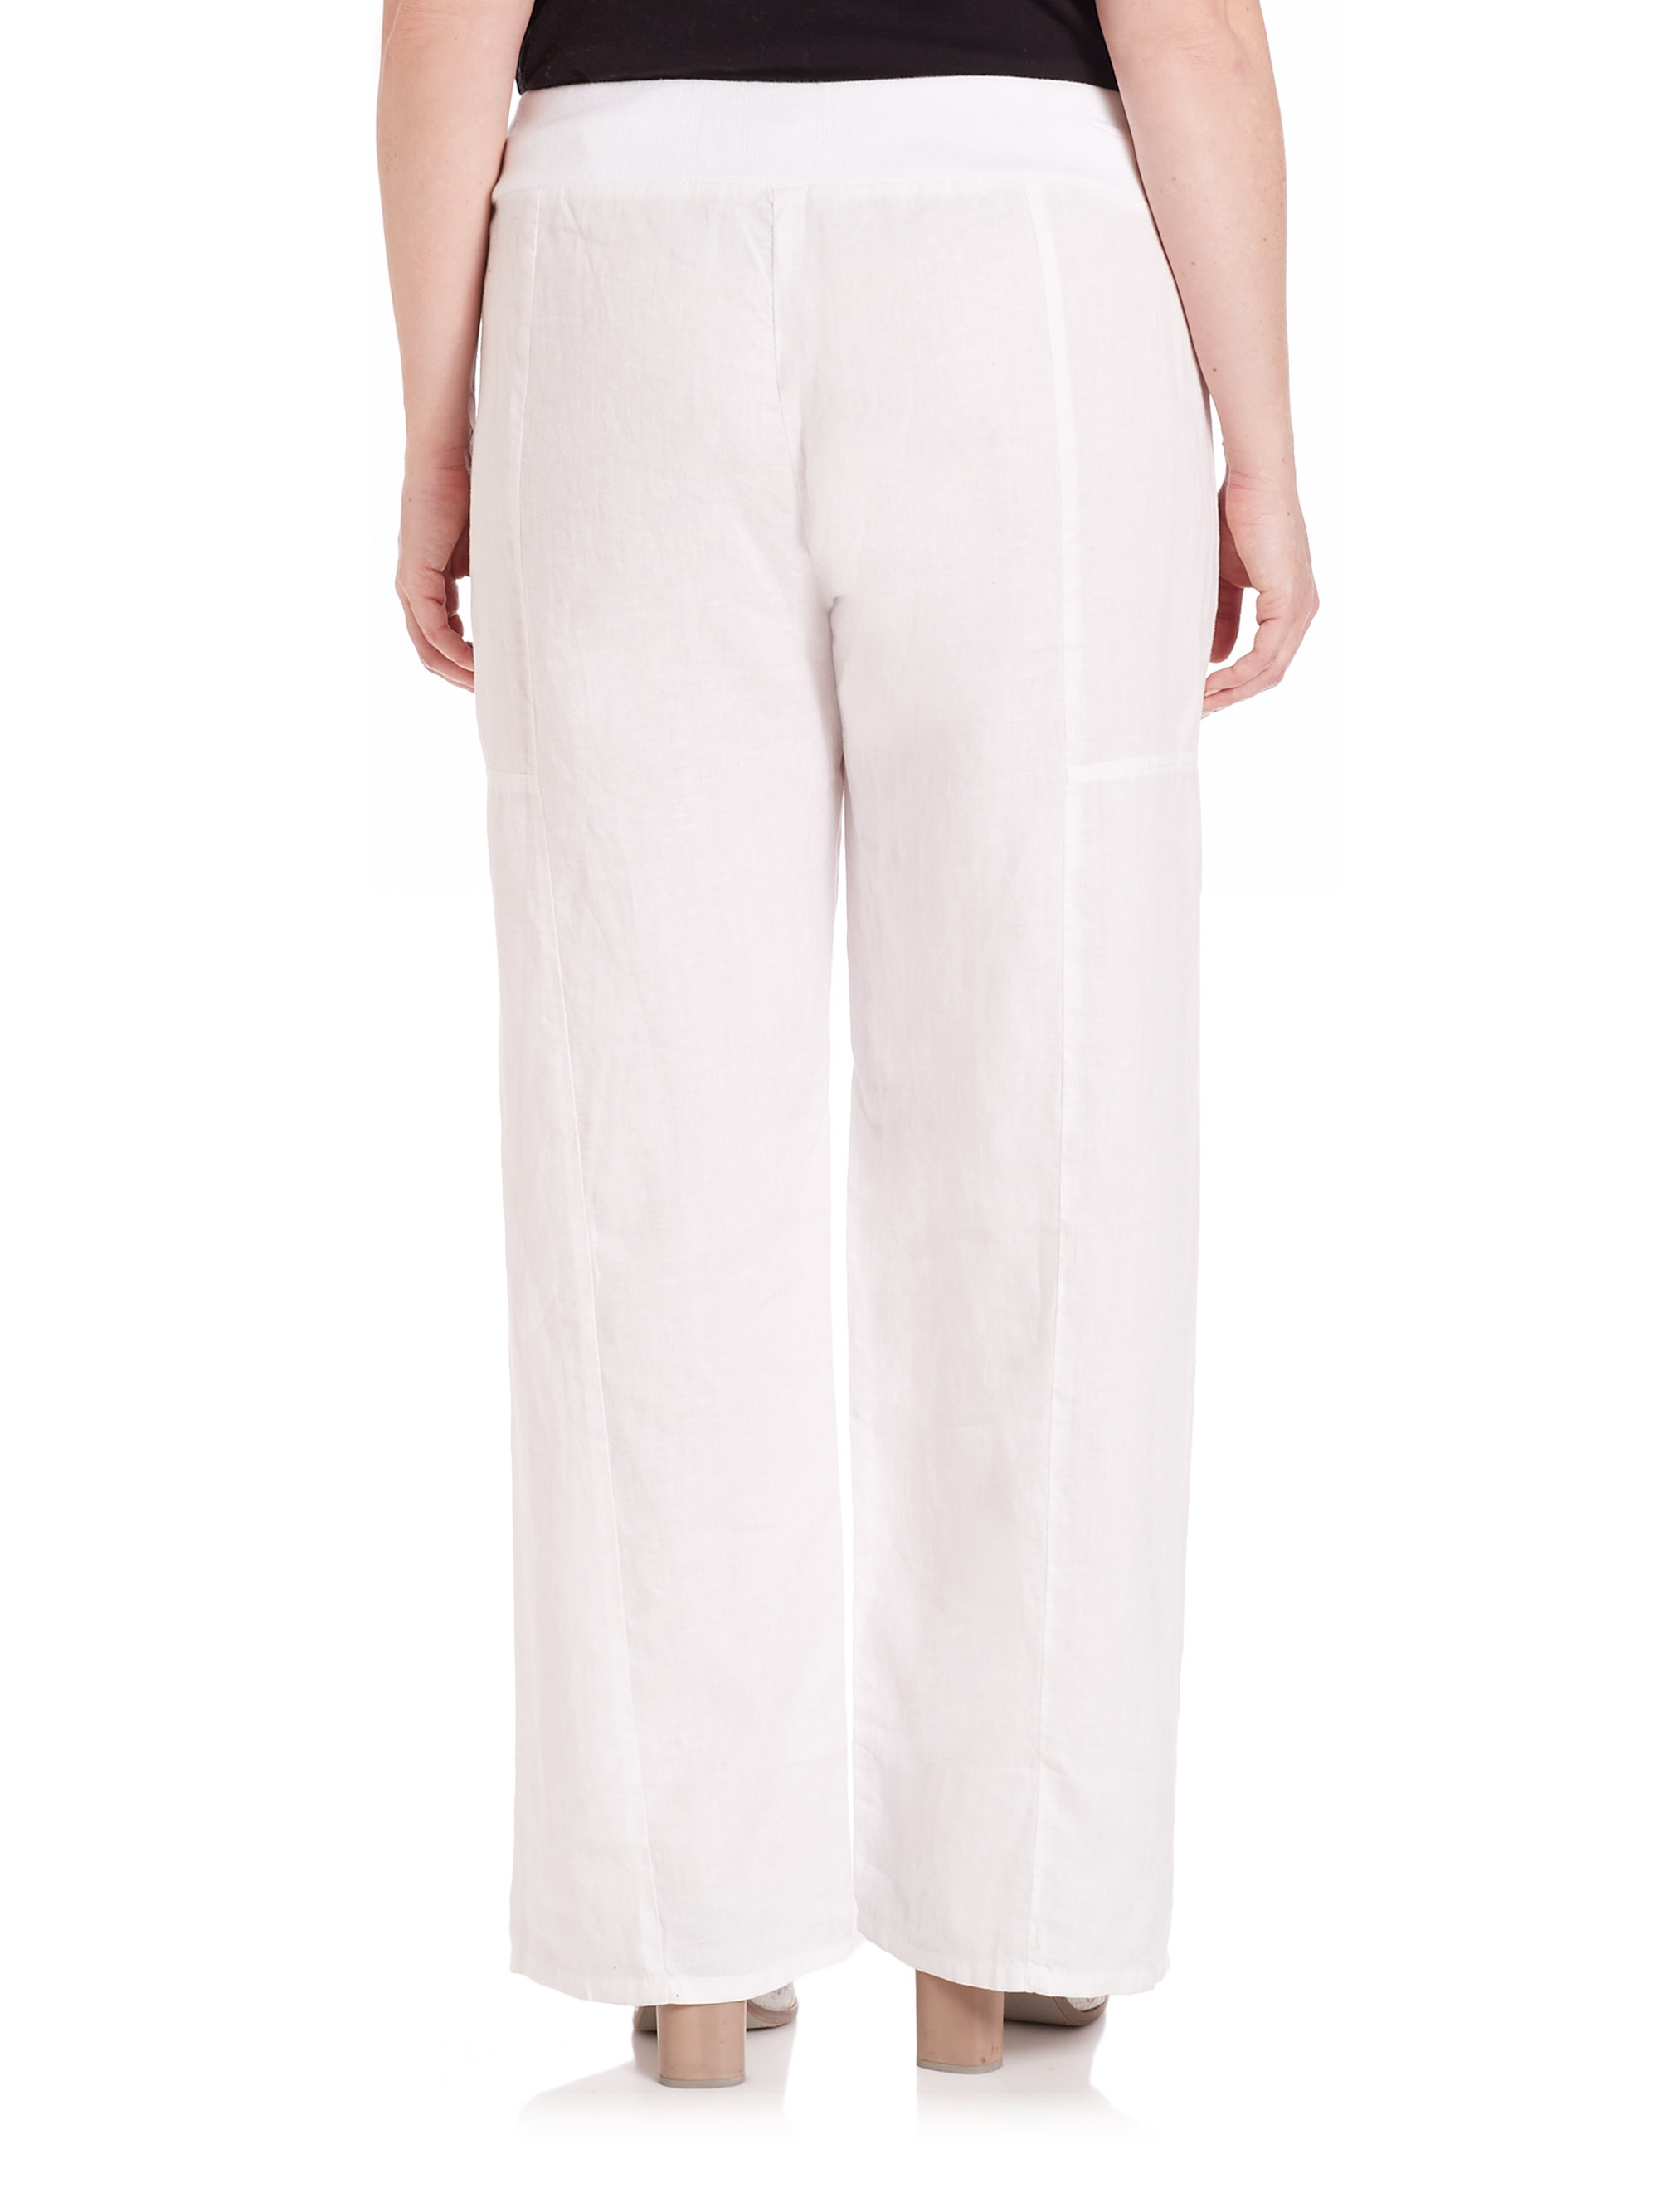 Eileen fisher Linen Wide-leg Pants in White | Lyst